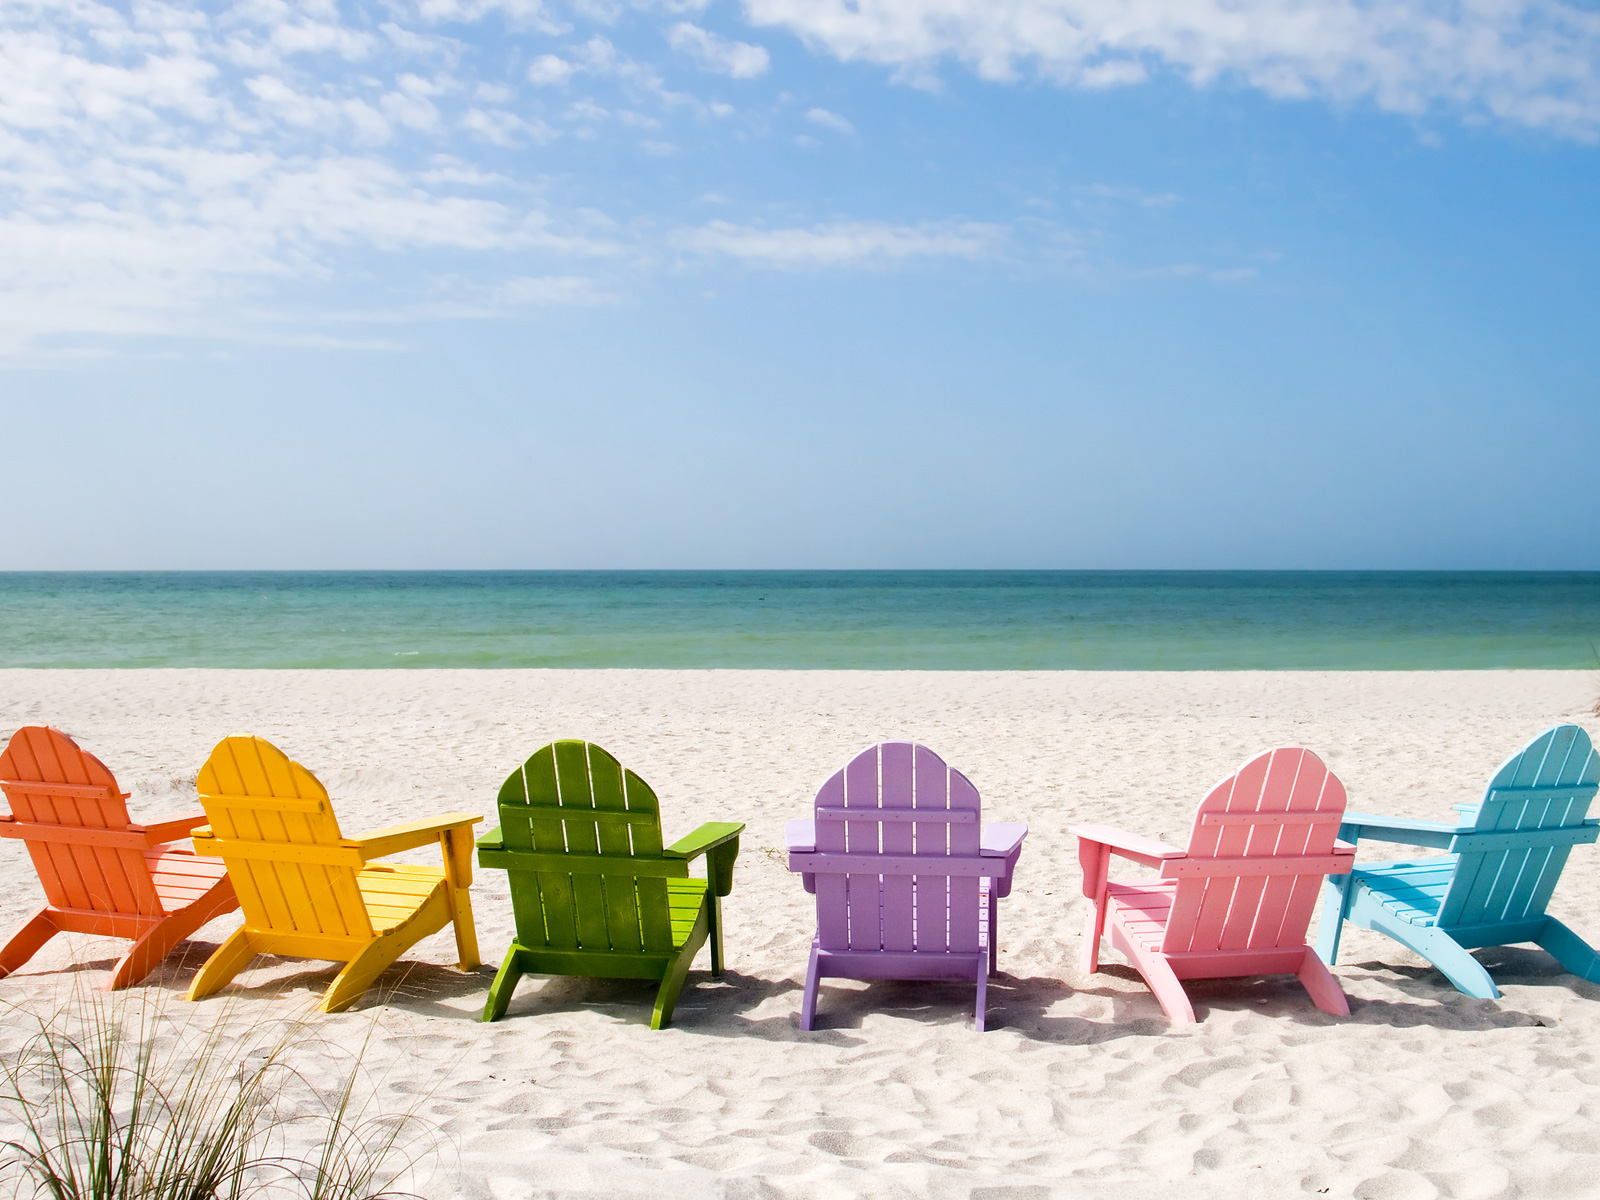 What Are The Best Oversized Beach Chairs For Heavy People And